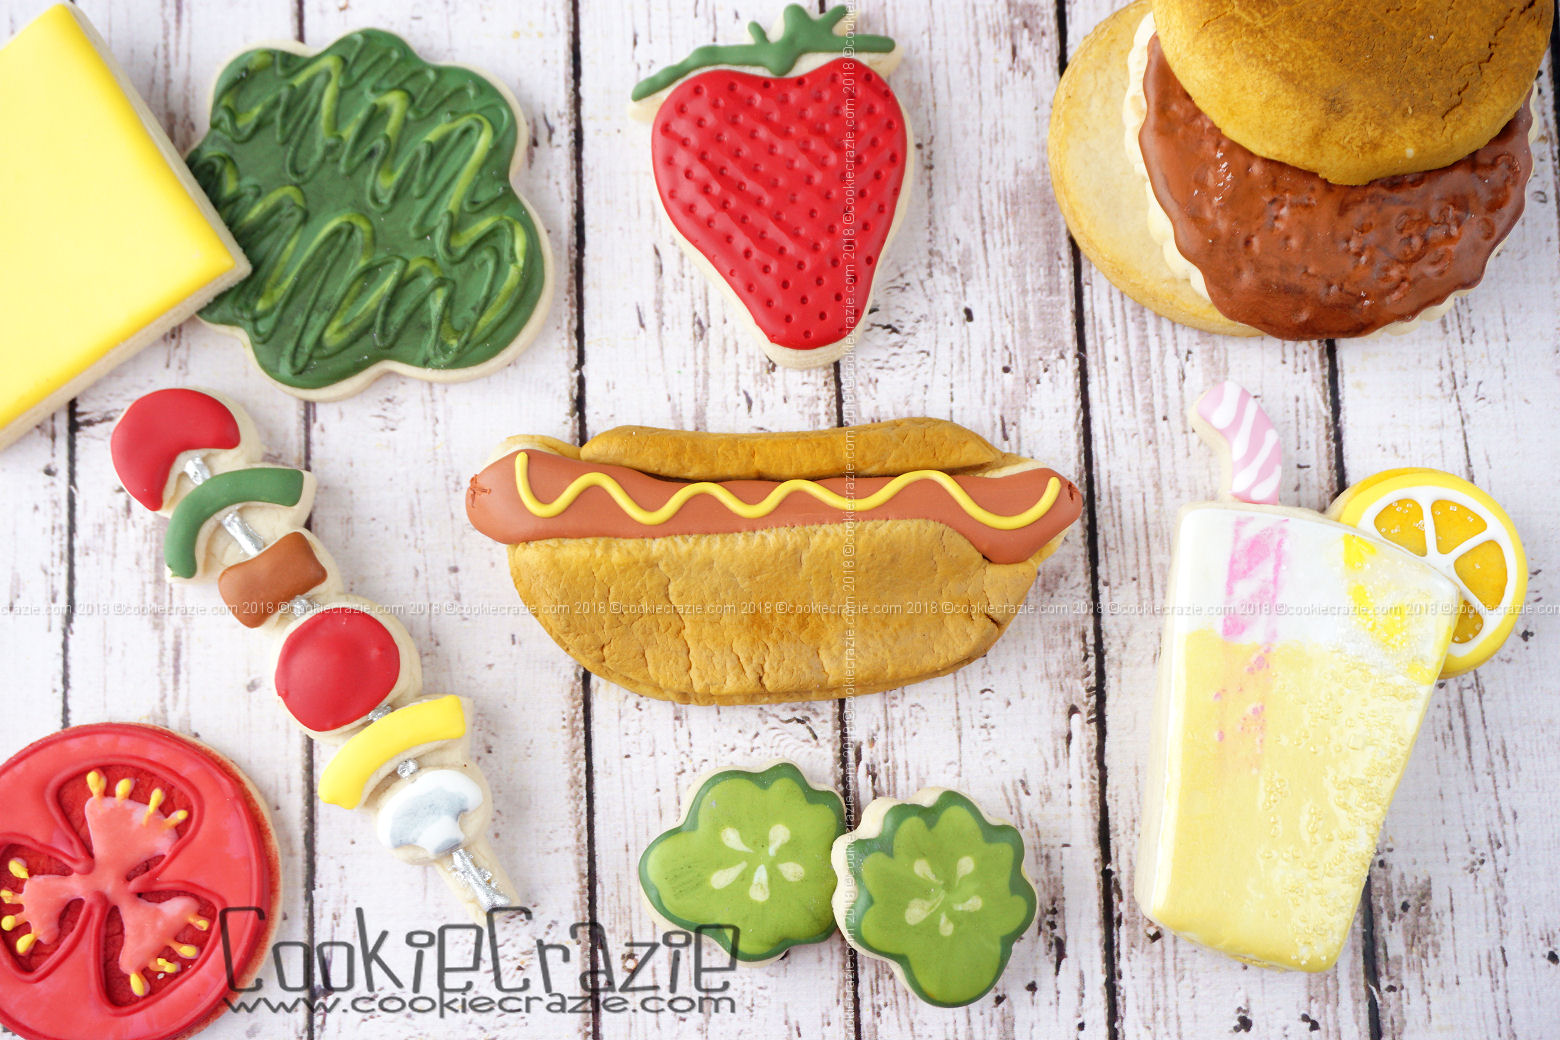 Hot Dog Decorated Sugar Cookie YouTube video  HERE